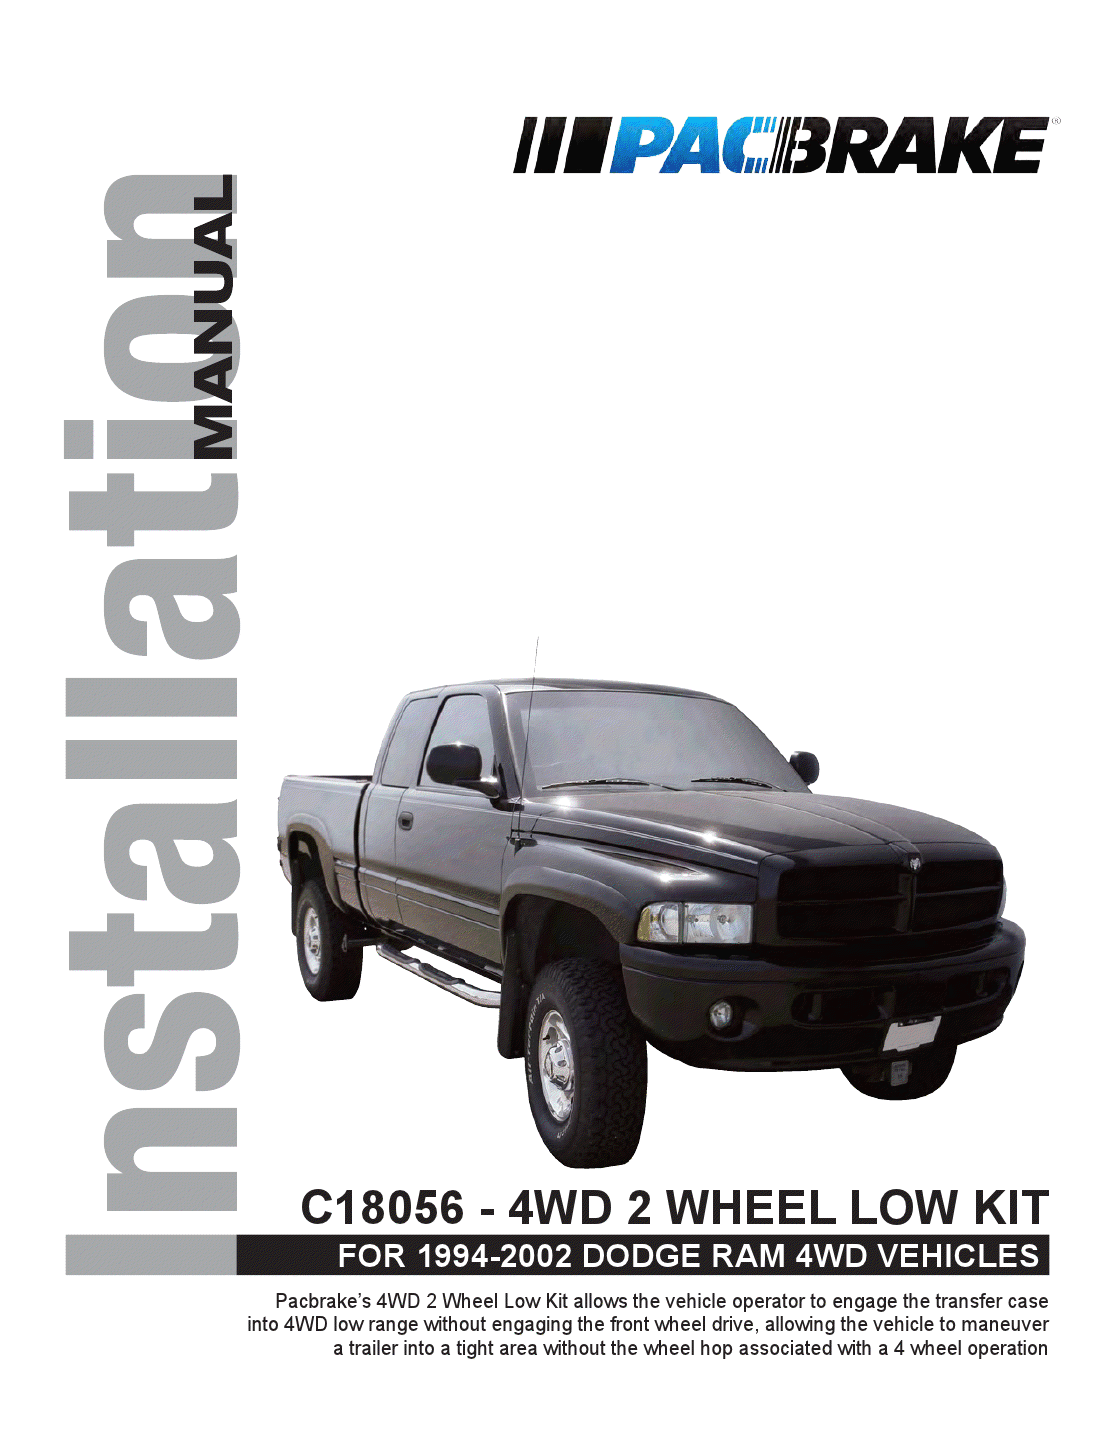 FOR 1994-2002 DODGE RAM 4WD VEHICLES